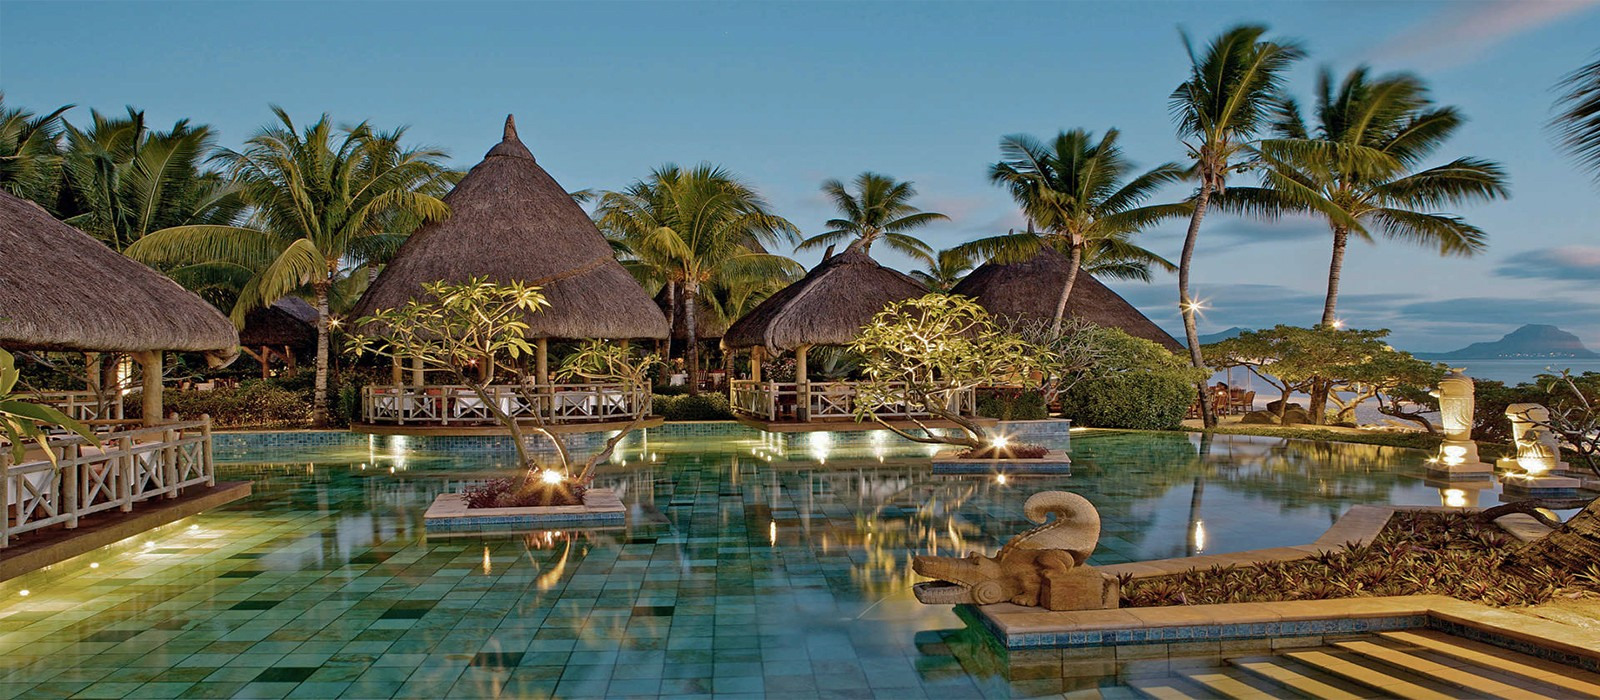 La-Pirogue-Resort-and-Spa-Luxury-Mauritius-Holiday-Packages-header1-1600x700.jpg